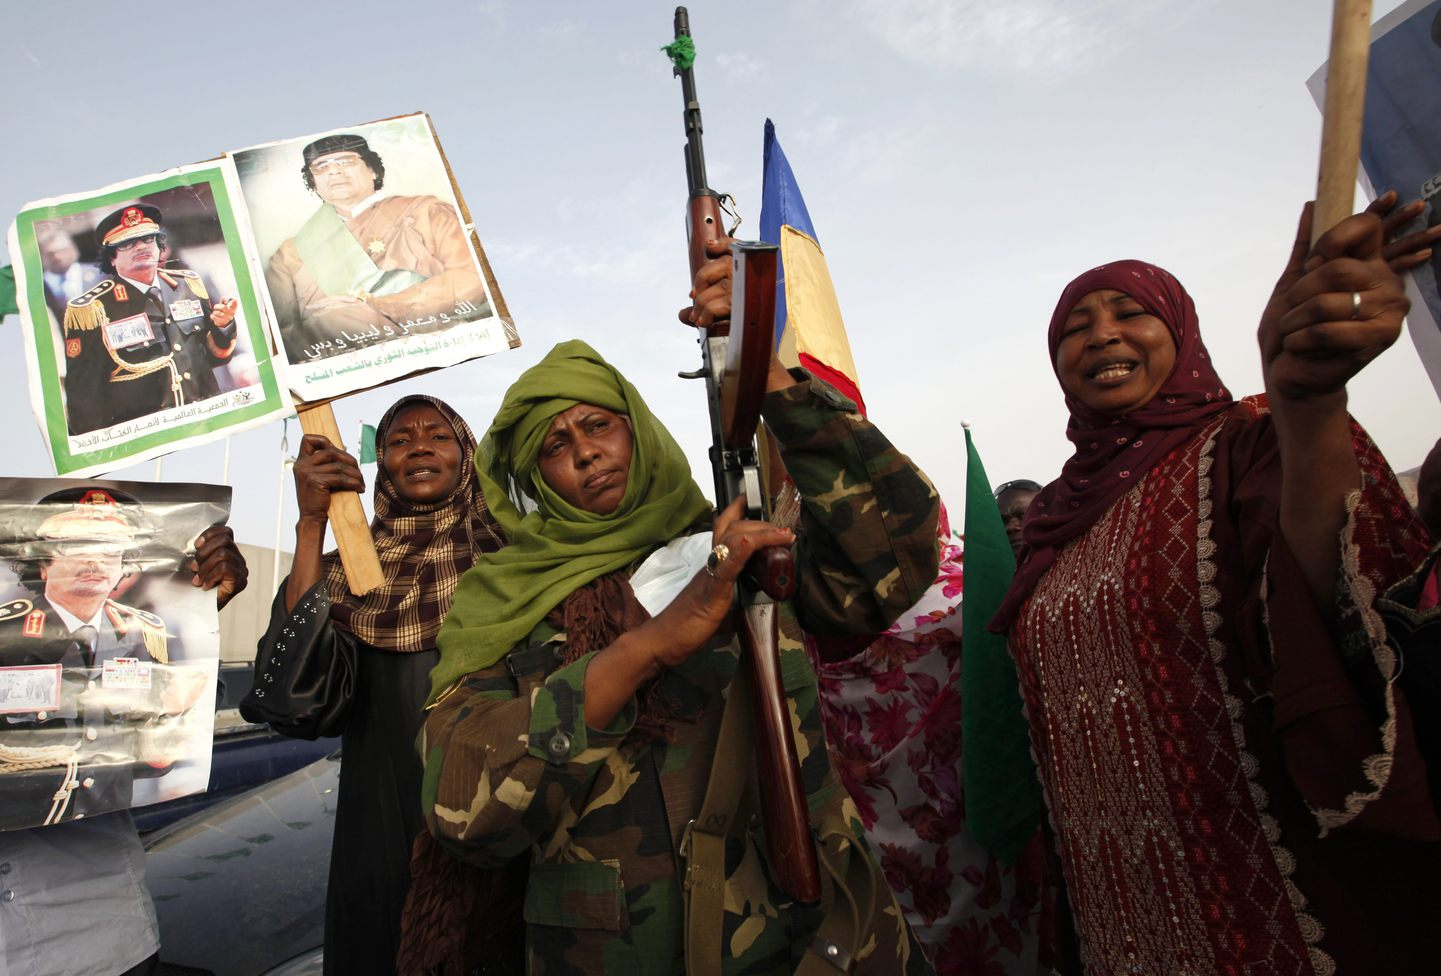 imagiration of people in libya Driving immigration under gaddafi's regime, oil-rich libya enjoyed one of the highest standards of living in africa but seven years of fighting and instability have destroyed the economy.